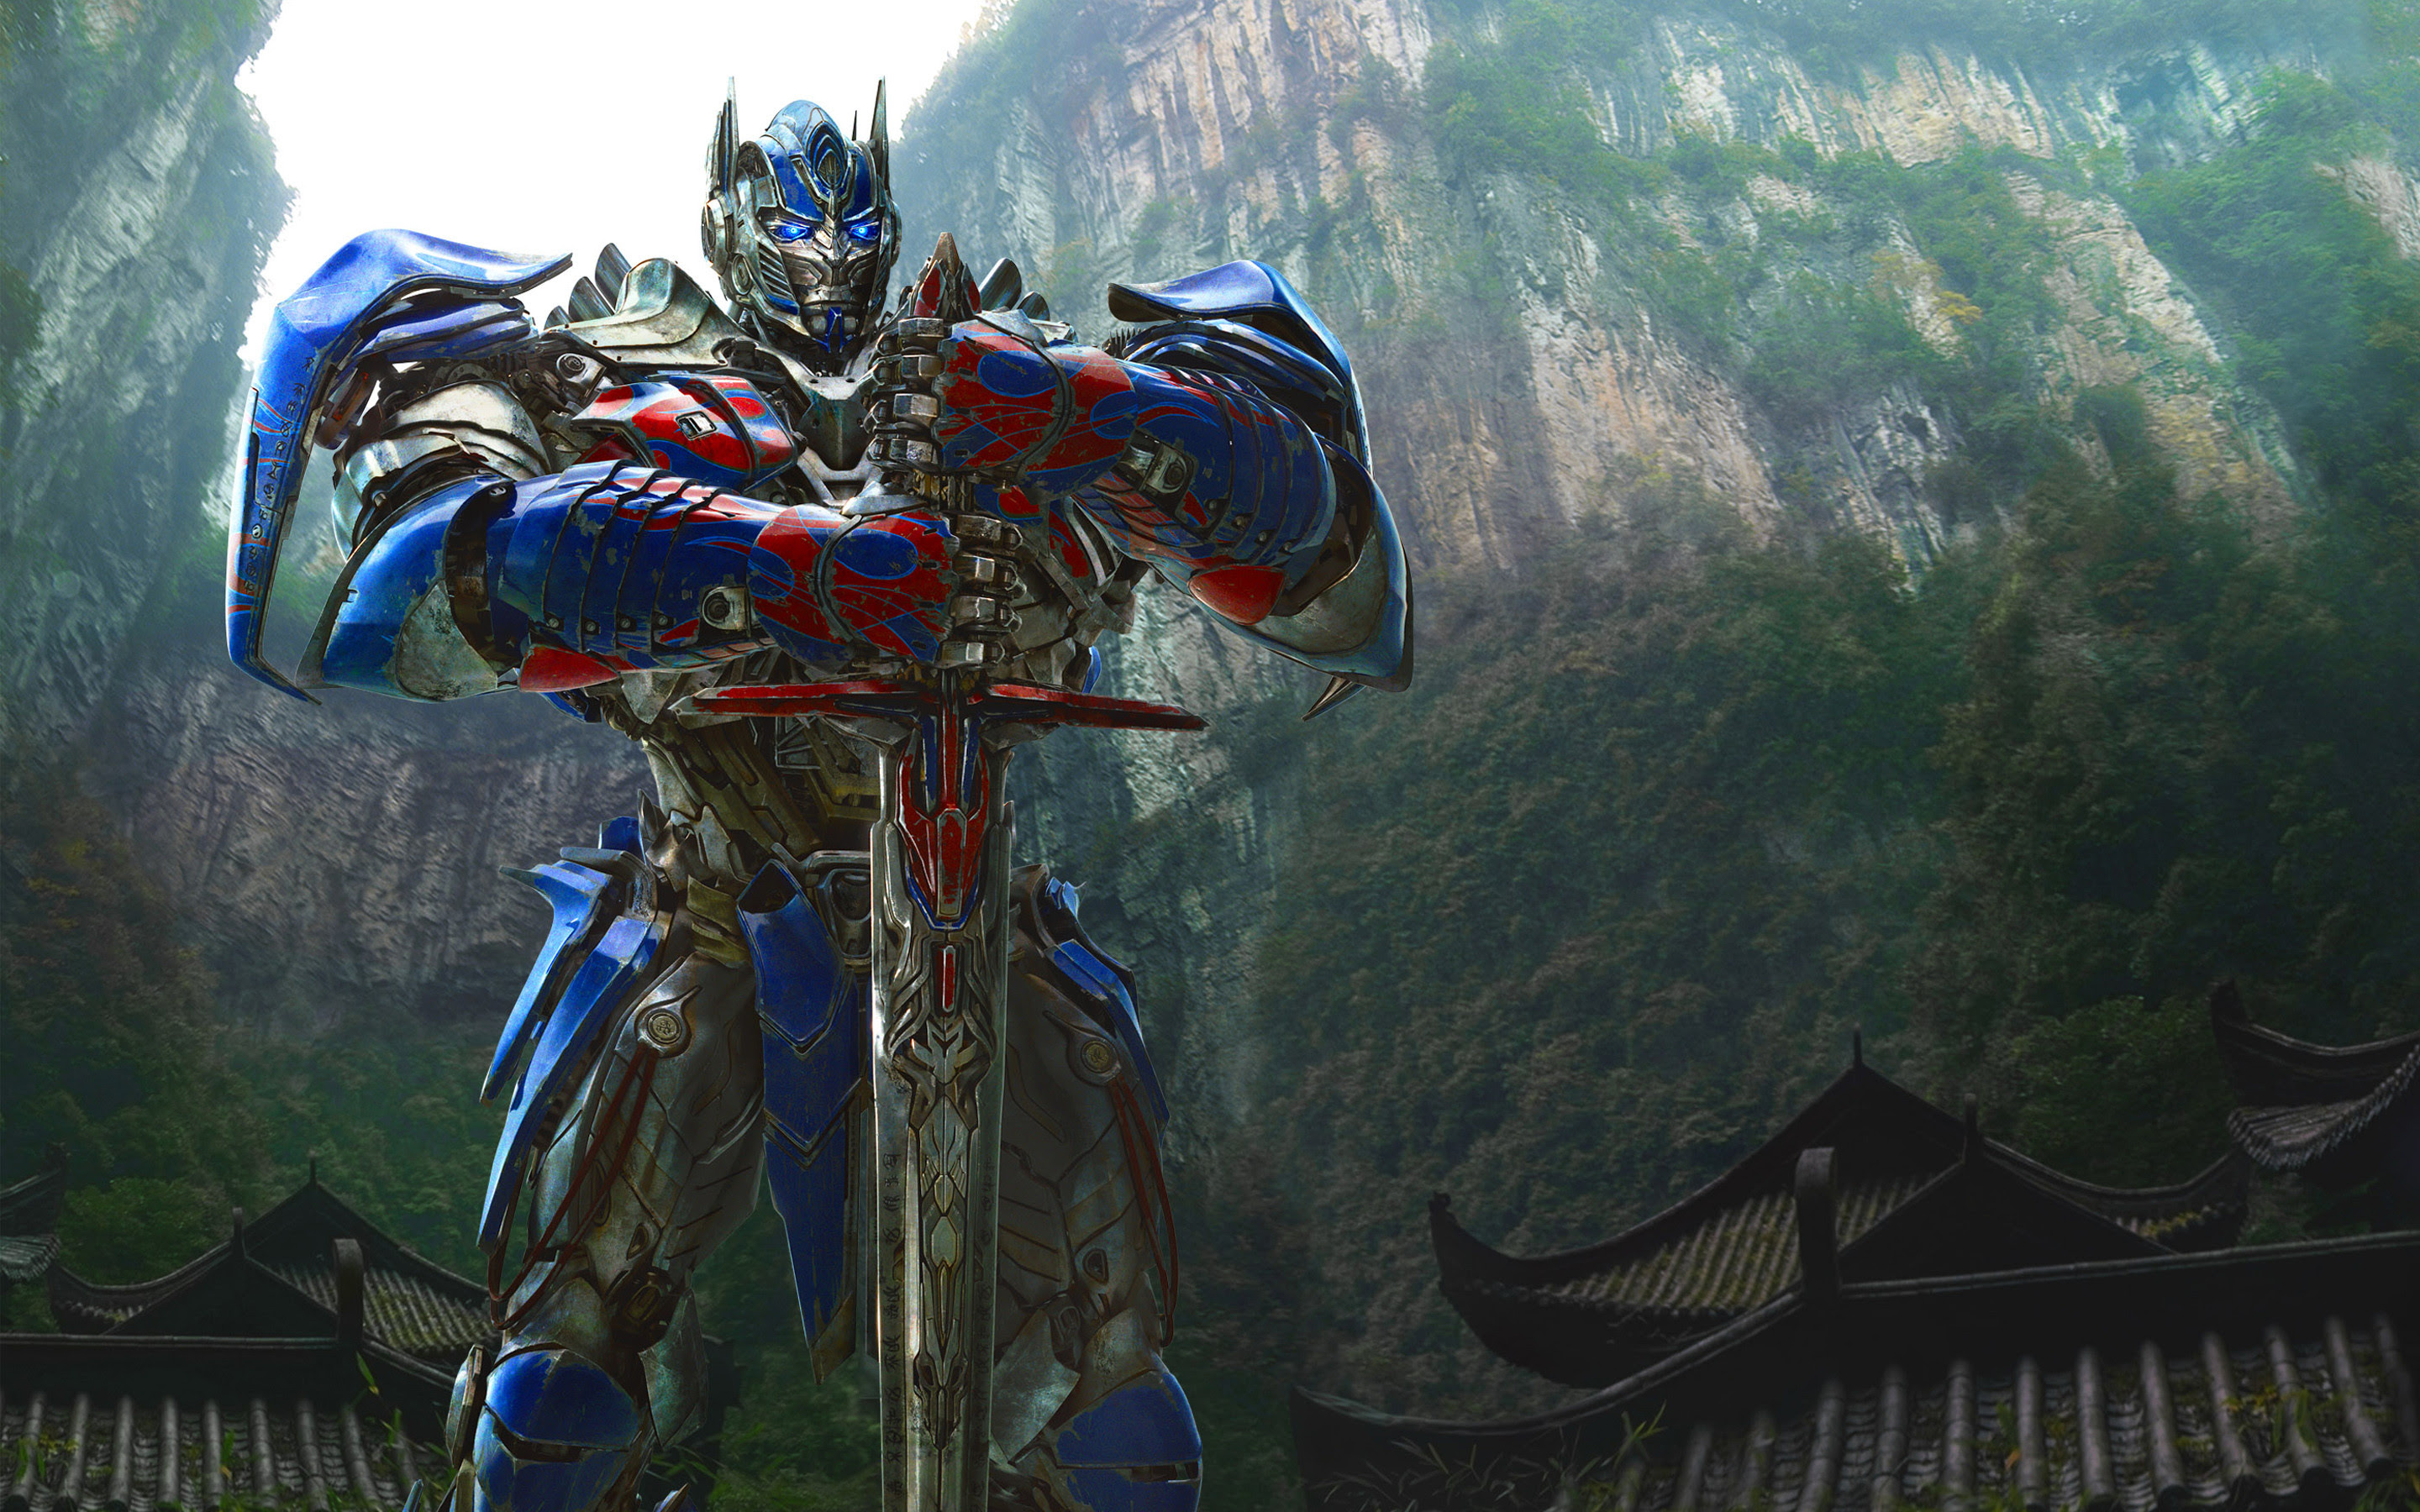 Transformers Wallpapers 70 Images